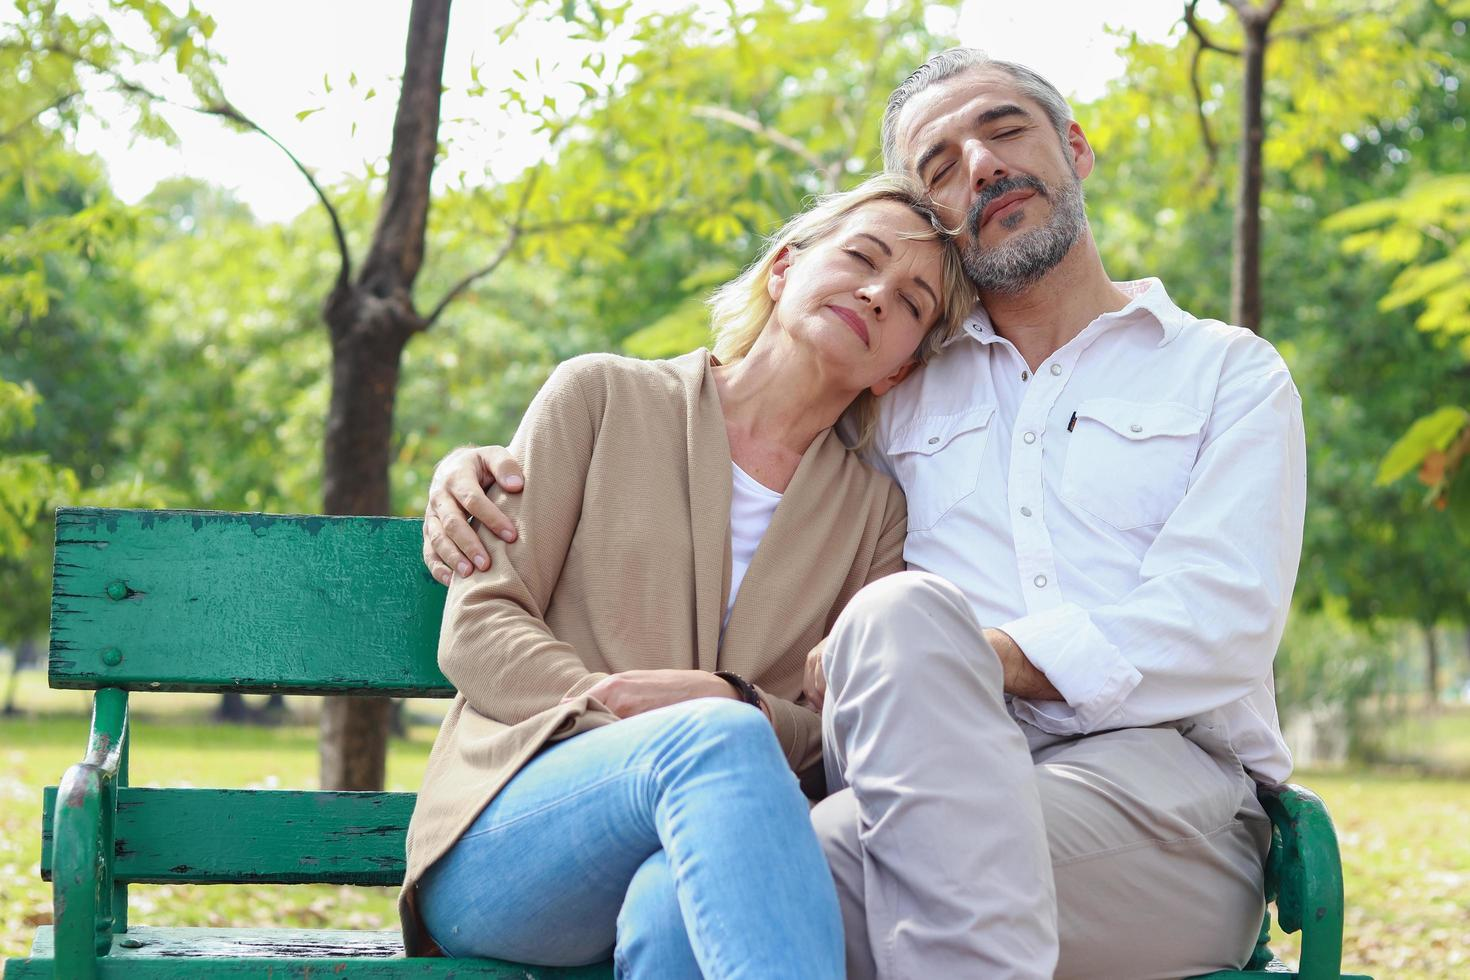 Couple relaxing on park bench photo